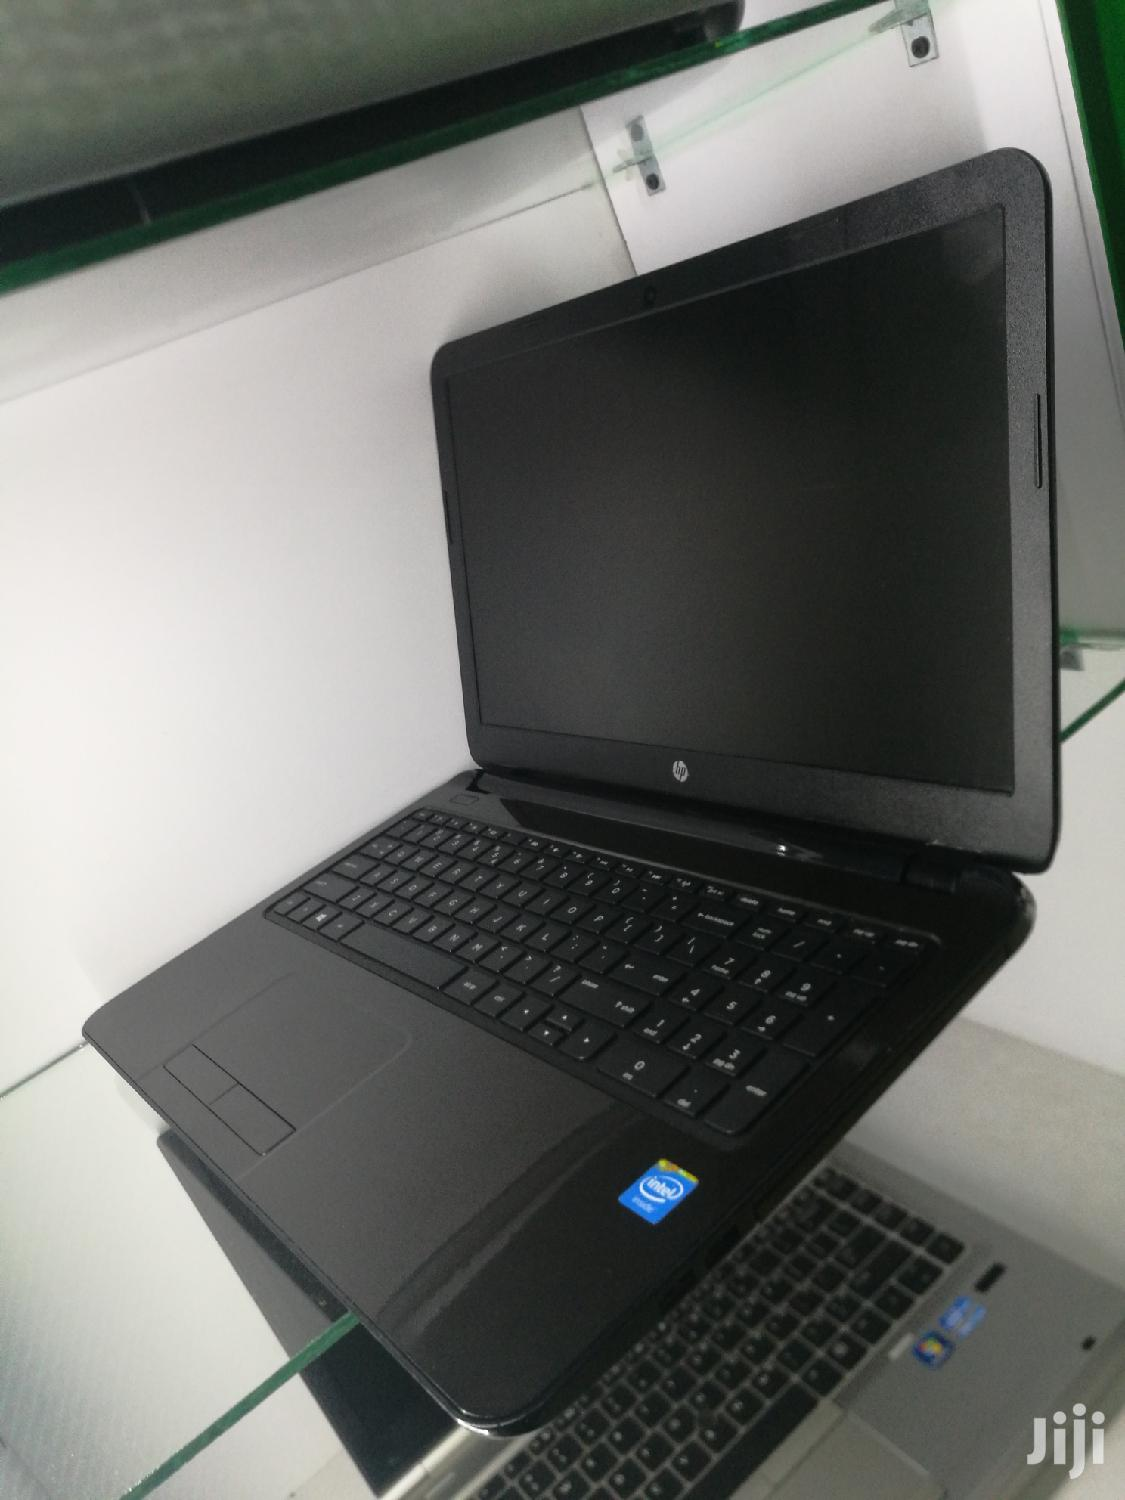 New Laptop HP 250 G3 4GB Intel Core 2 Duo HDD 256GB | Laptops & Computers for sale in Kampala, Central Region, Uganda